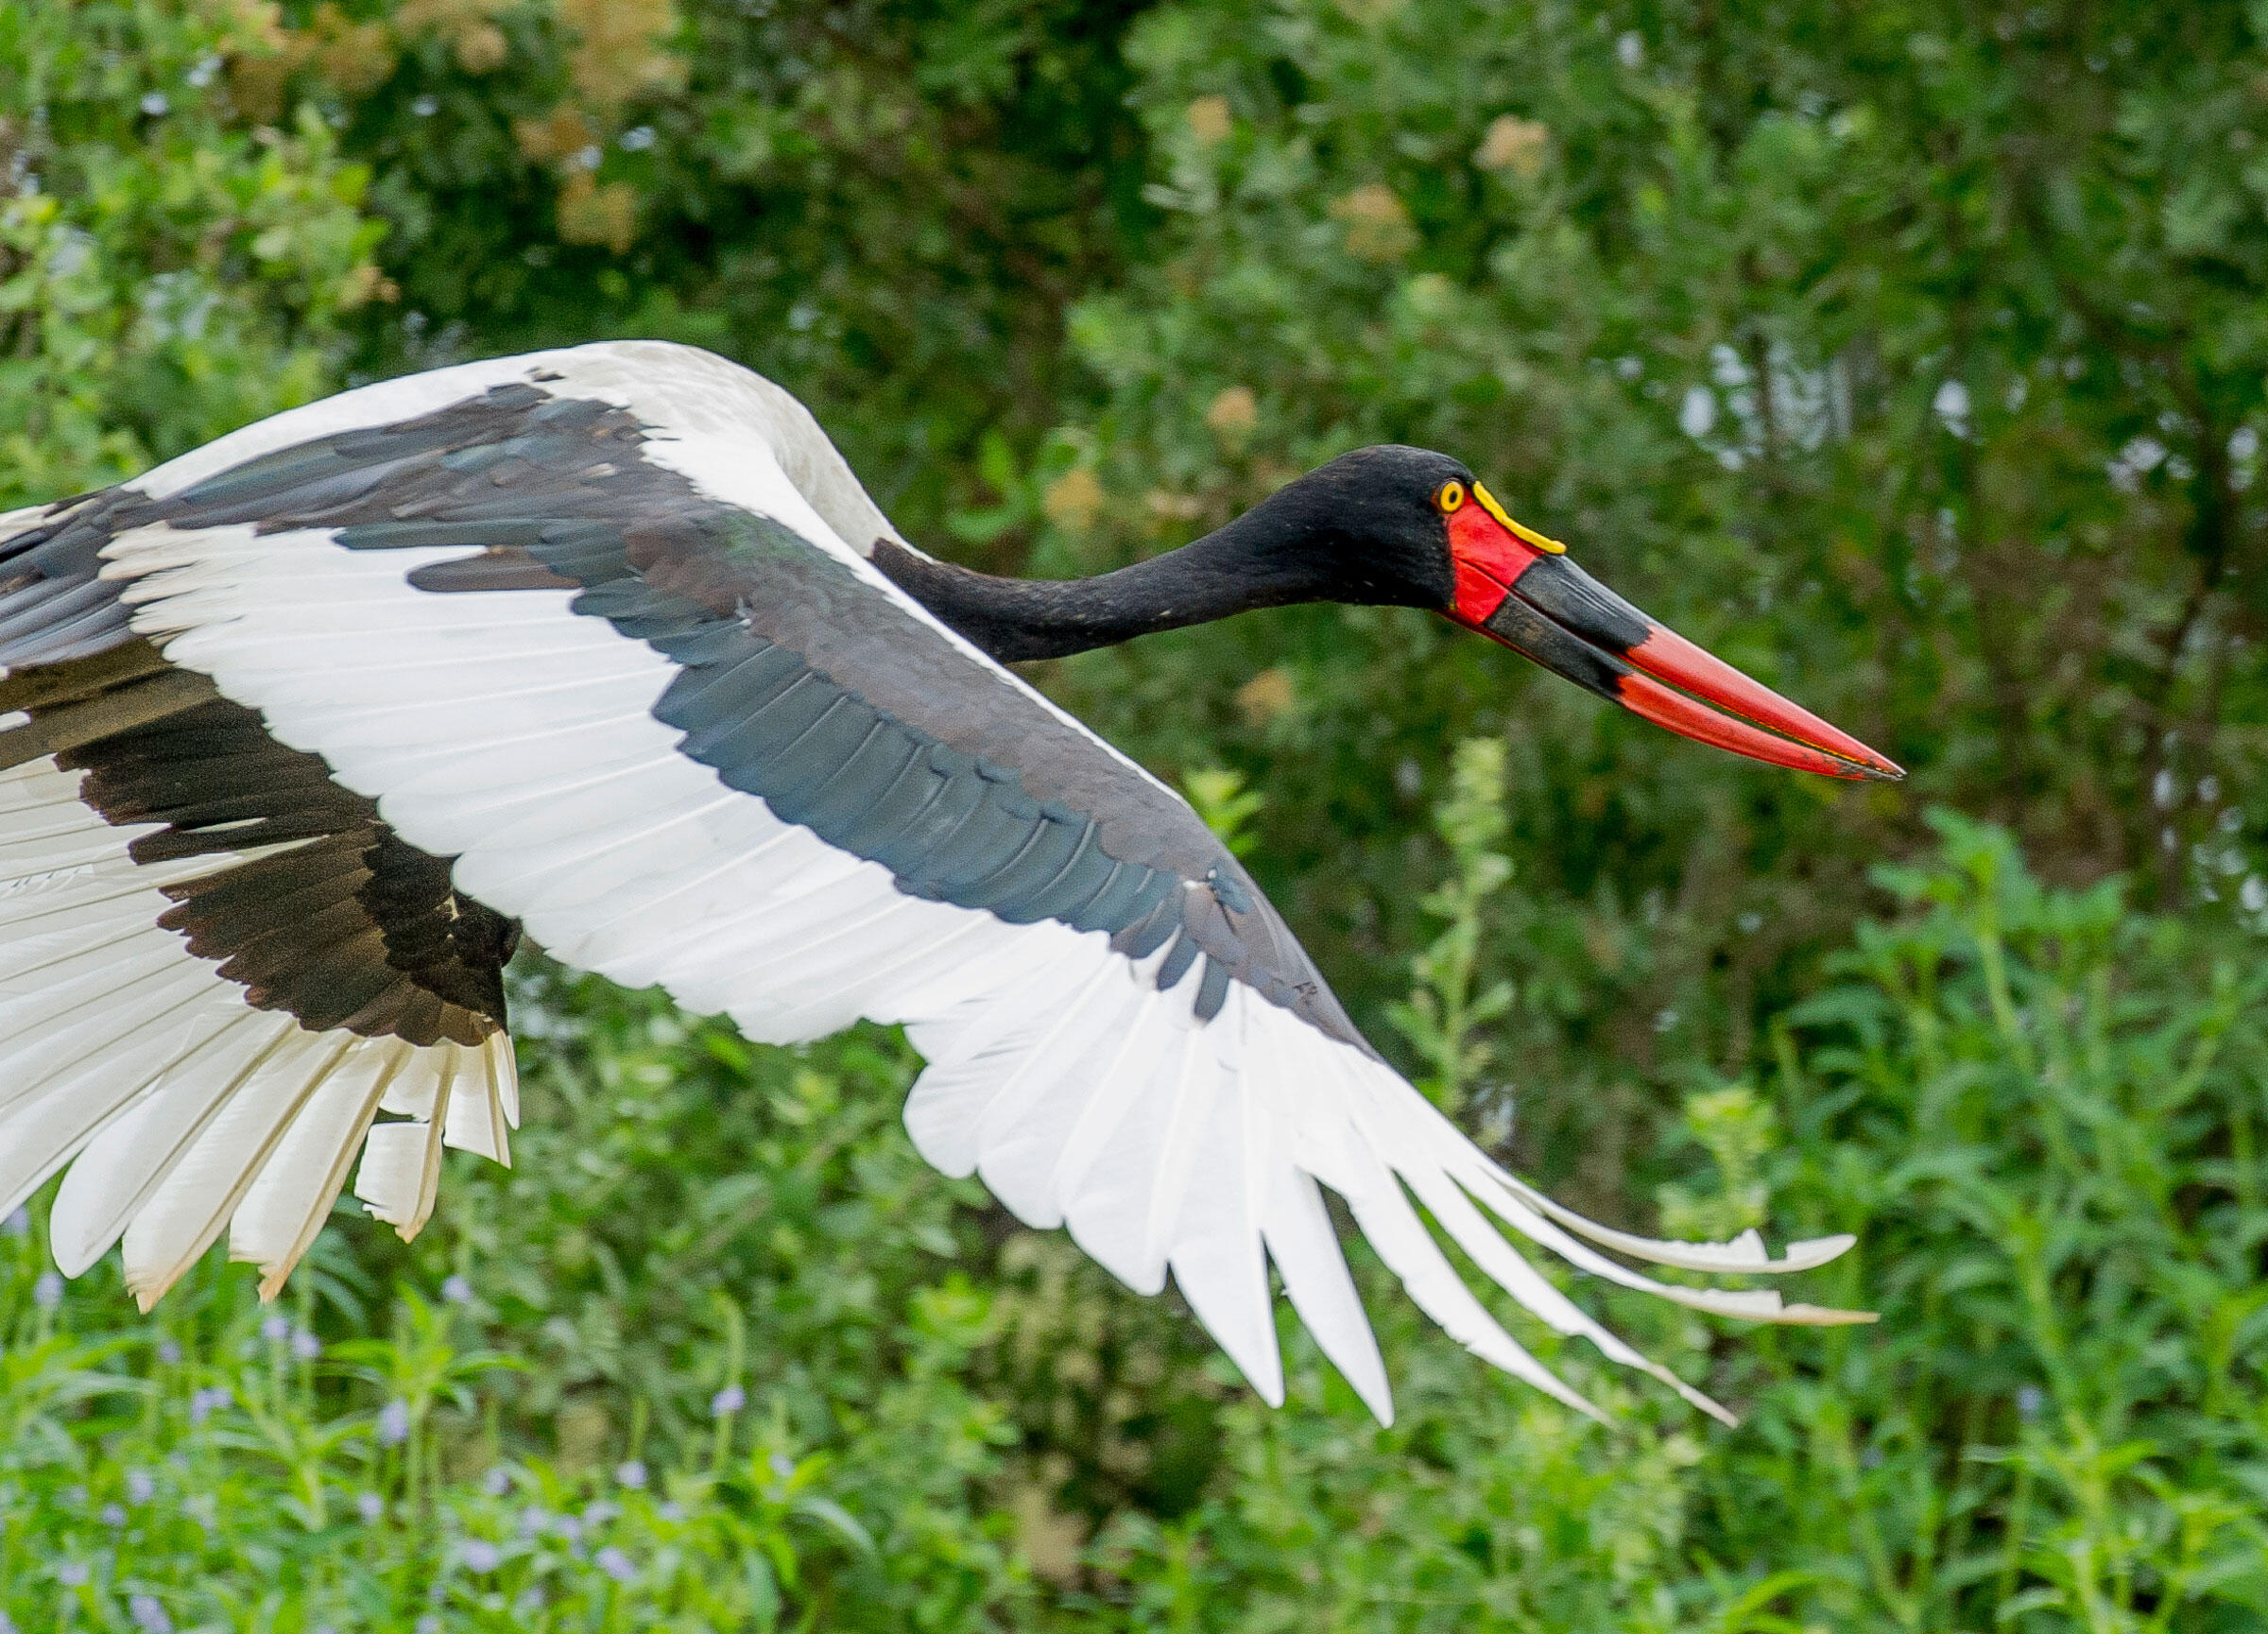 The Saddle-billed Stork is an impressive sight in flight. With a wingspan of up to three meters, the Saddle-billed is also the tallest of the storks. Robert J. Ross